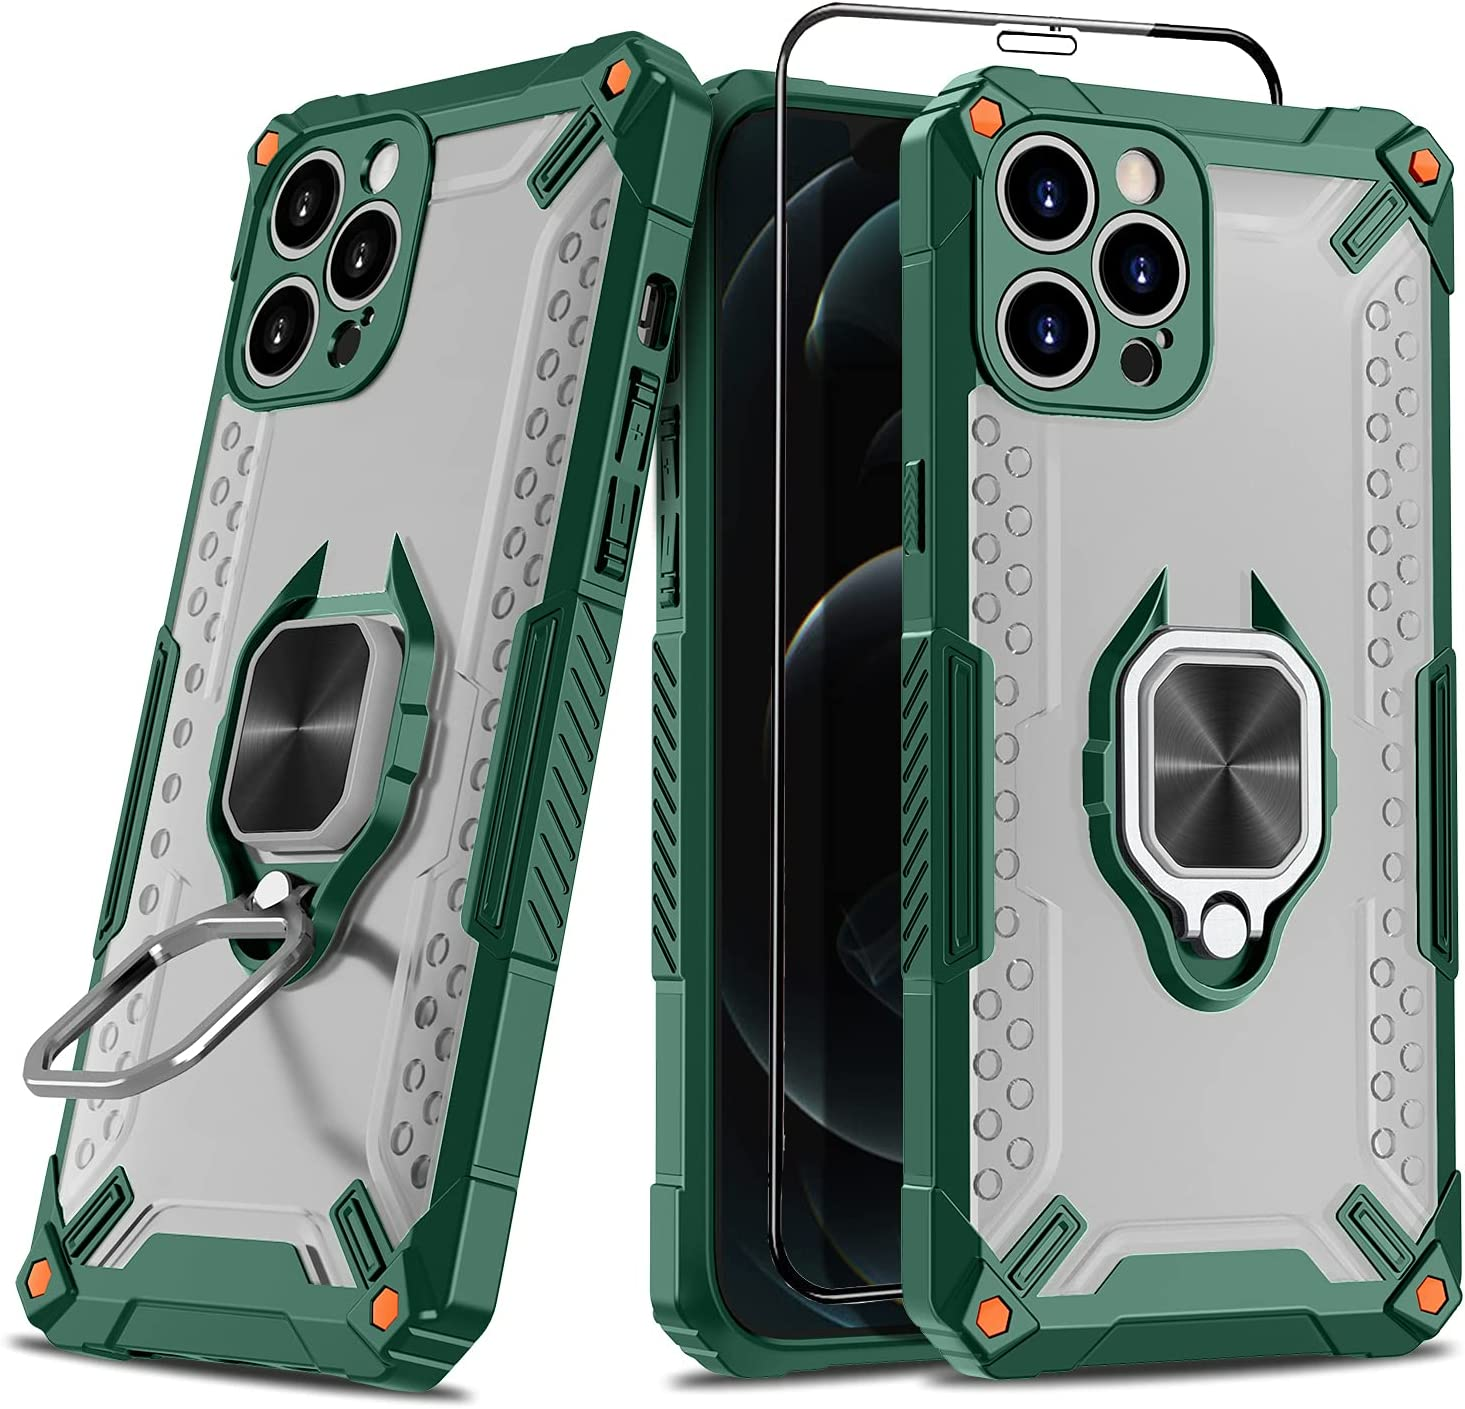 Fanbiya Armor Case Ranking TOP12 for iPhone Protec Kickstand Ranking TOP5 Invisible Drop 12